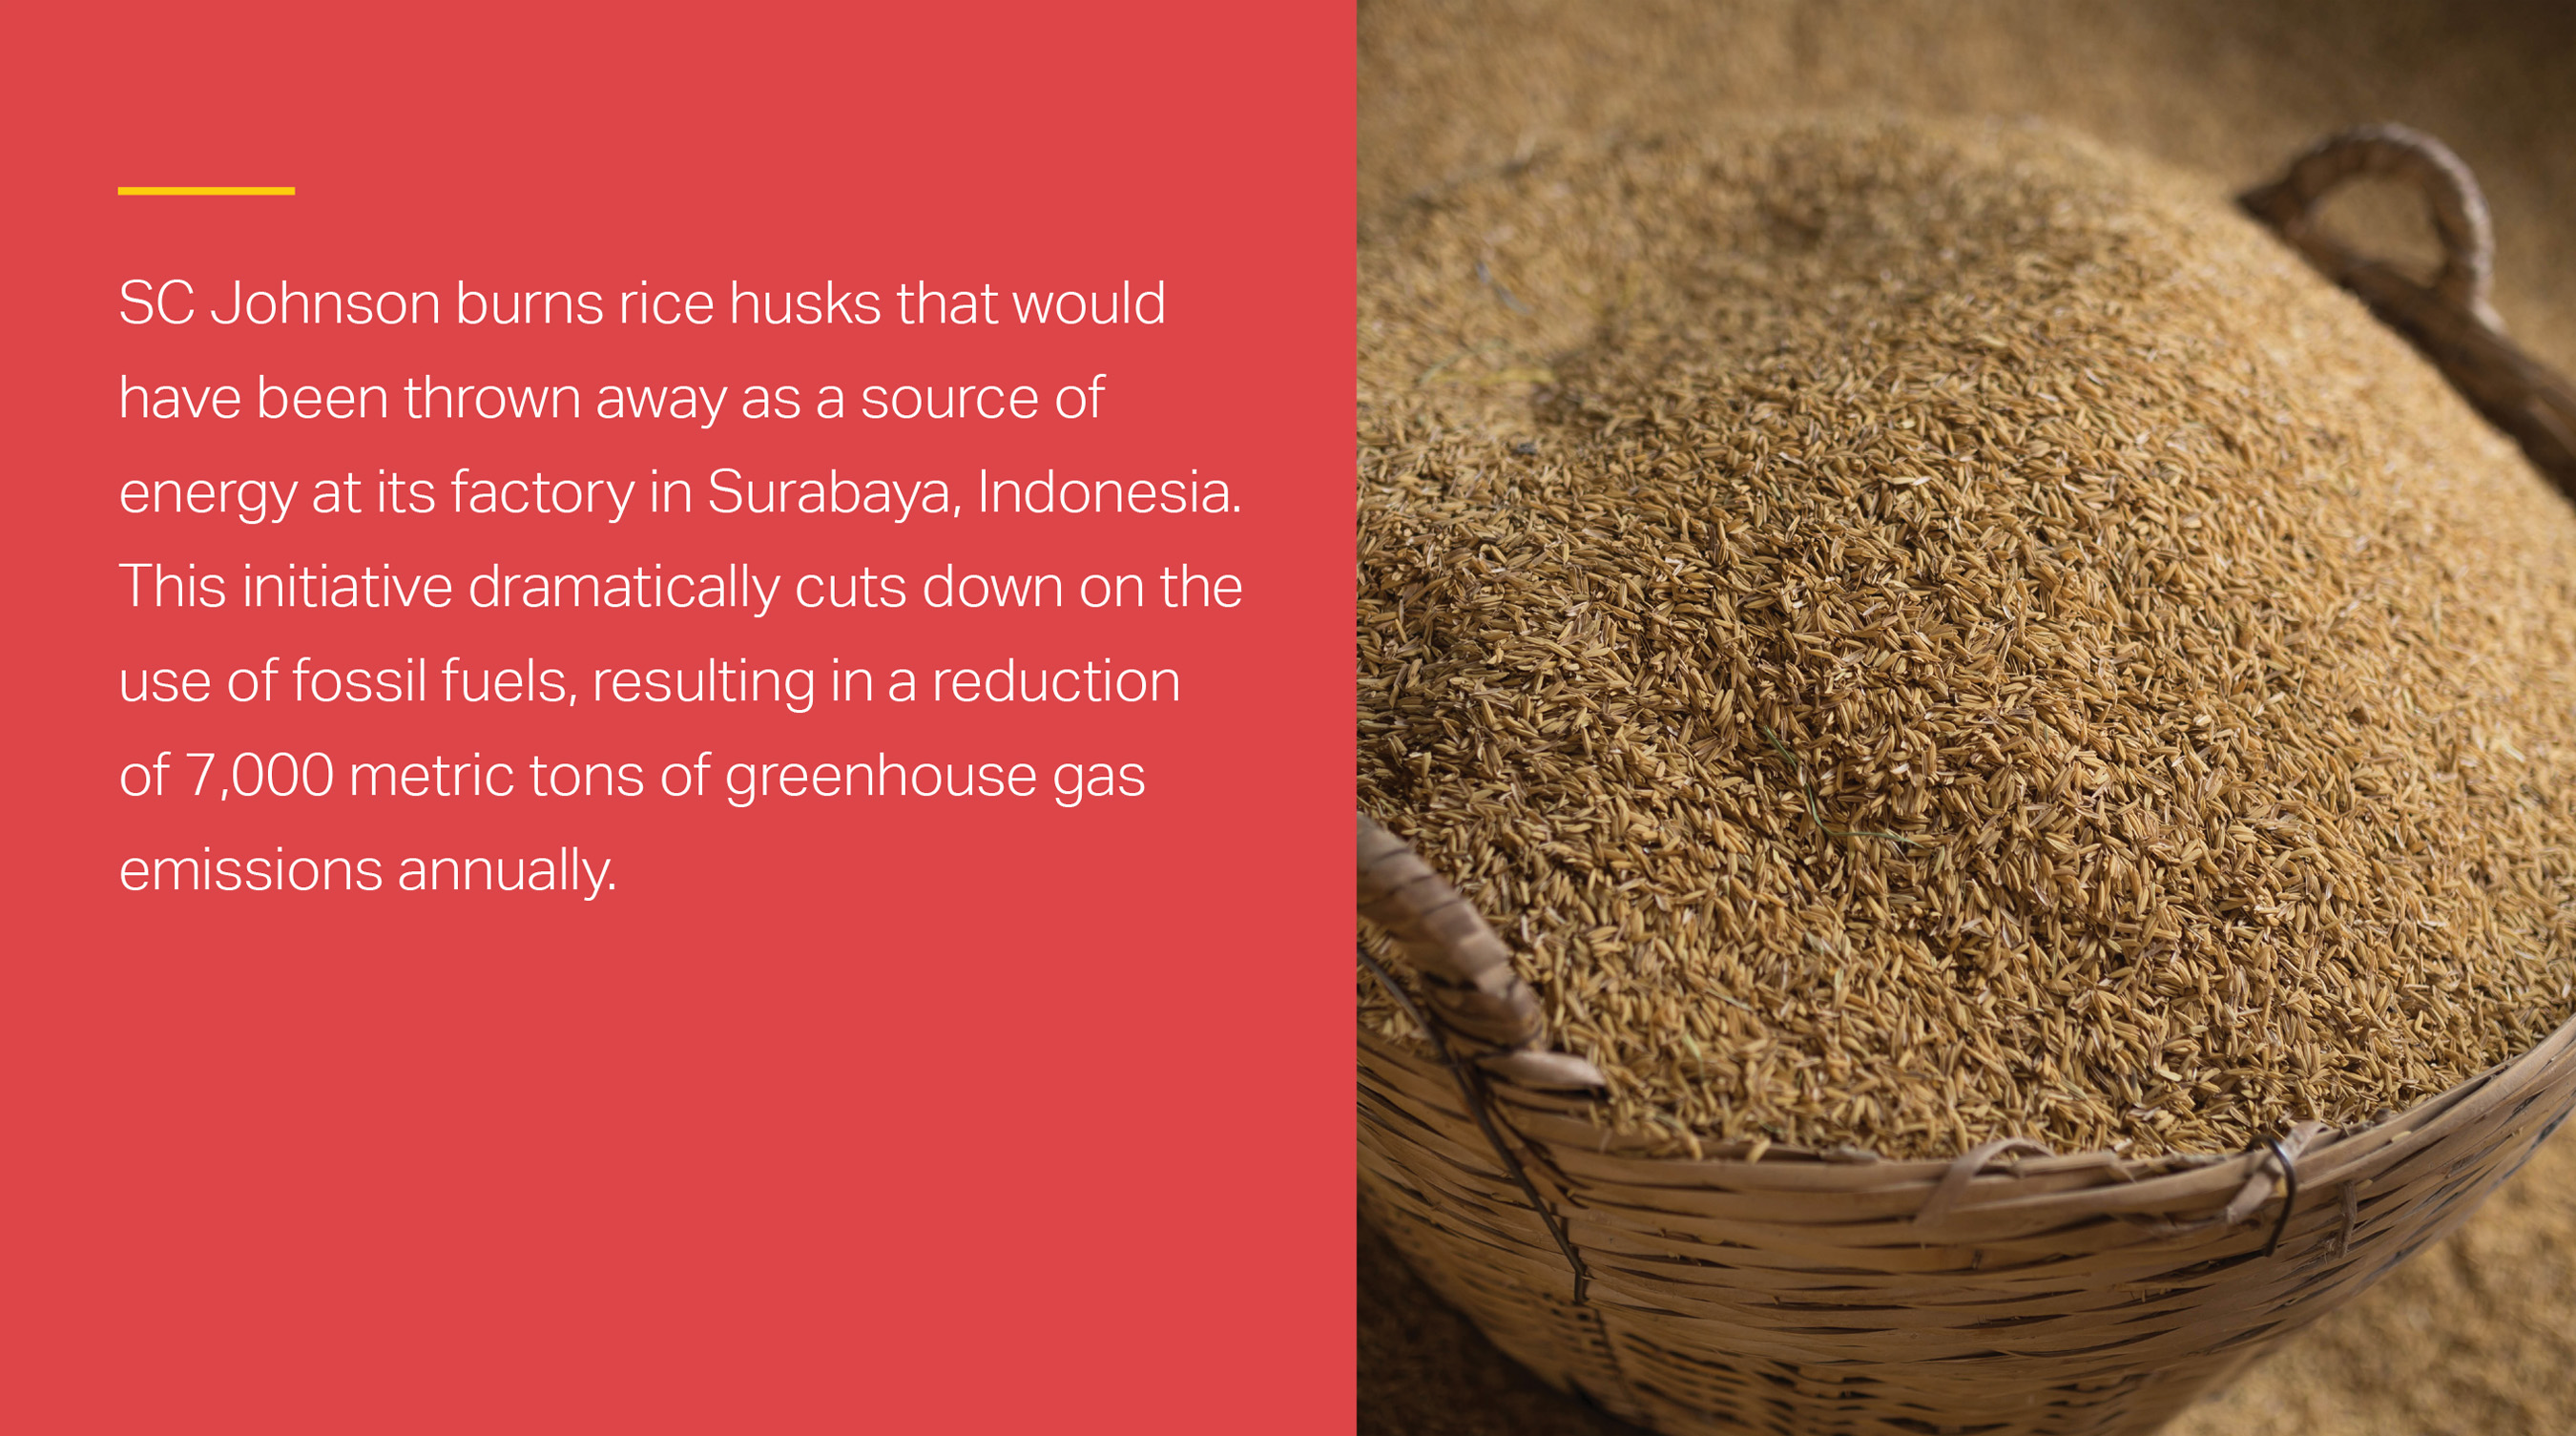 At SC Johnson's factory in Surabaya, Indonesia, husks from rice grains are burned as a source of energy.